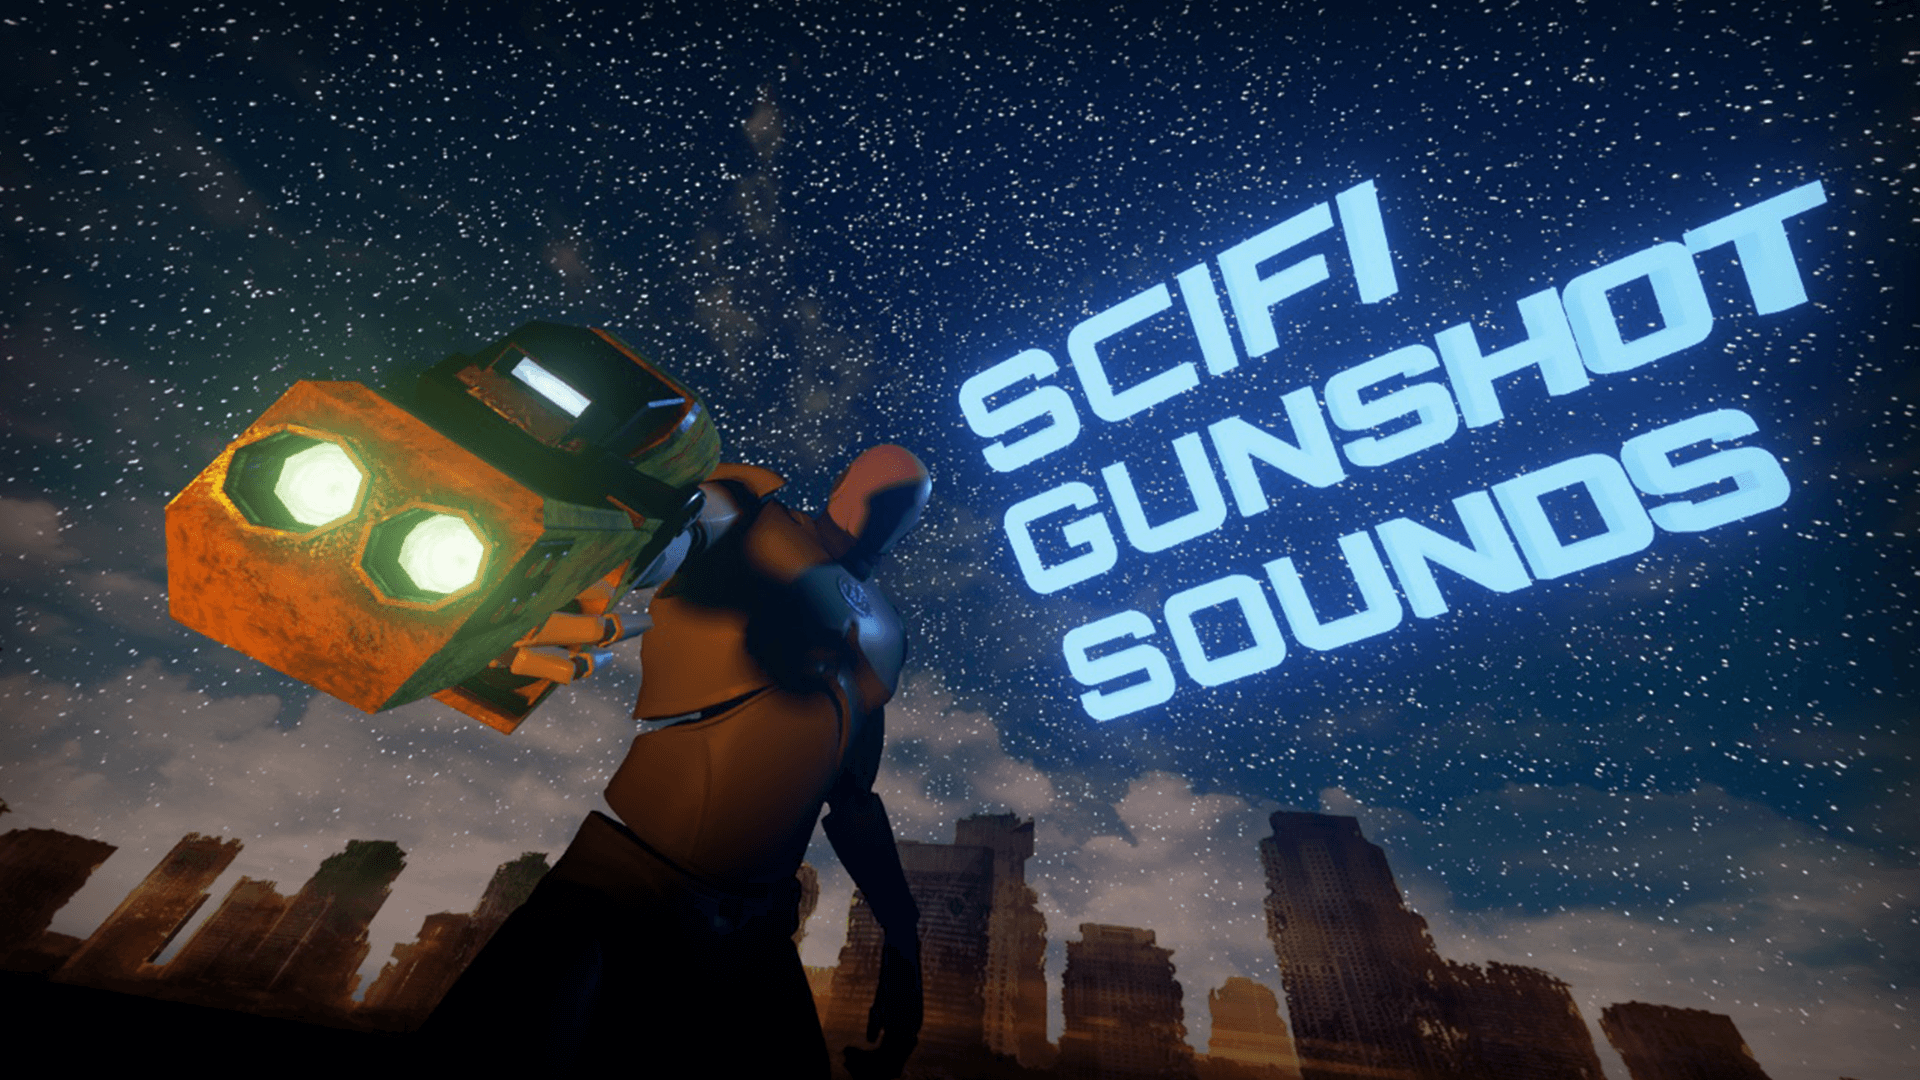 Scifi Gunshot Sounds by Bartosz Kamol Kaminski in Sound